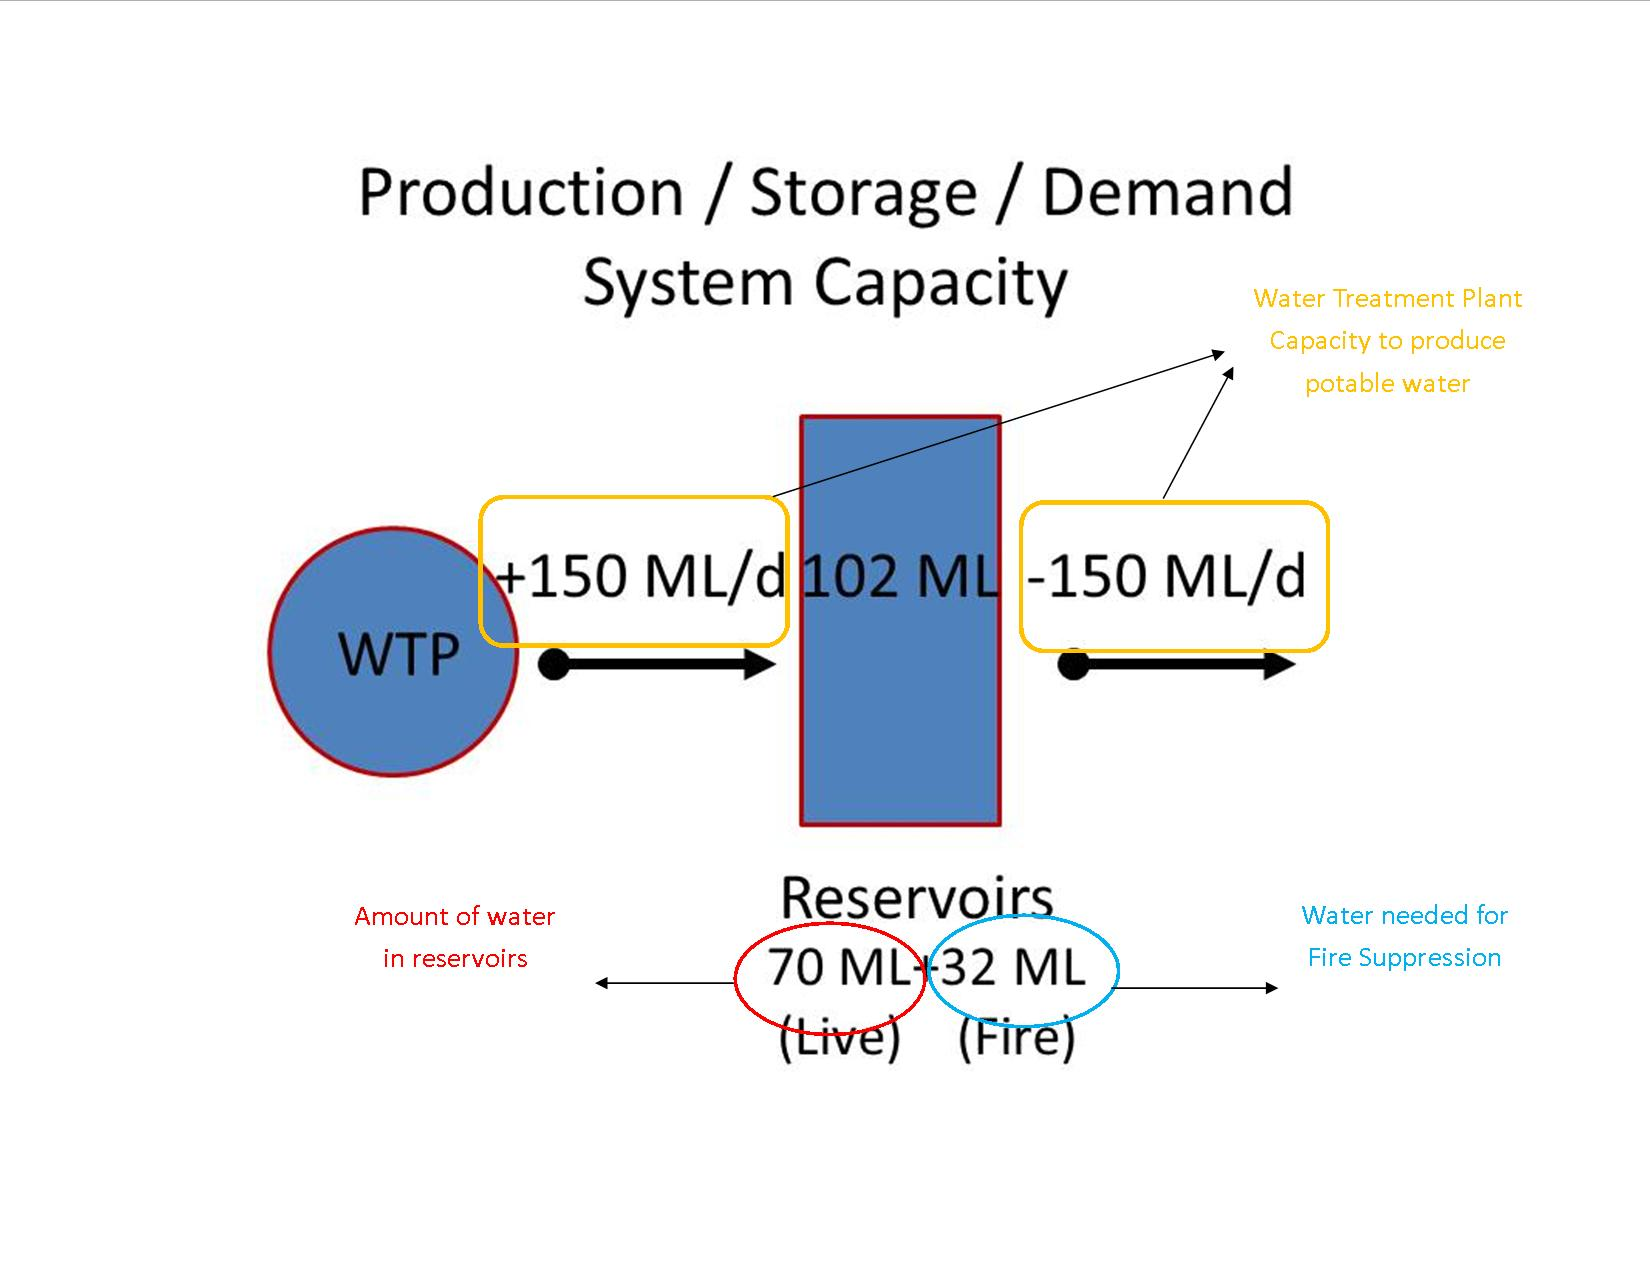 hight resolution of this diagram will be used to describe the production storage and demand for water throughout the week of the water boil order